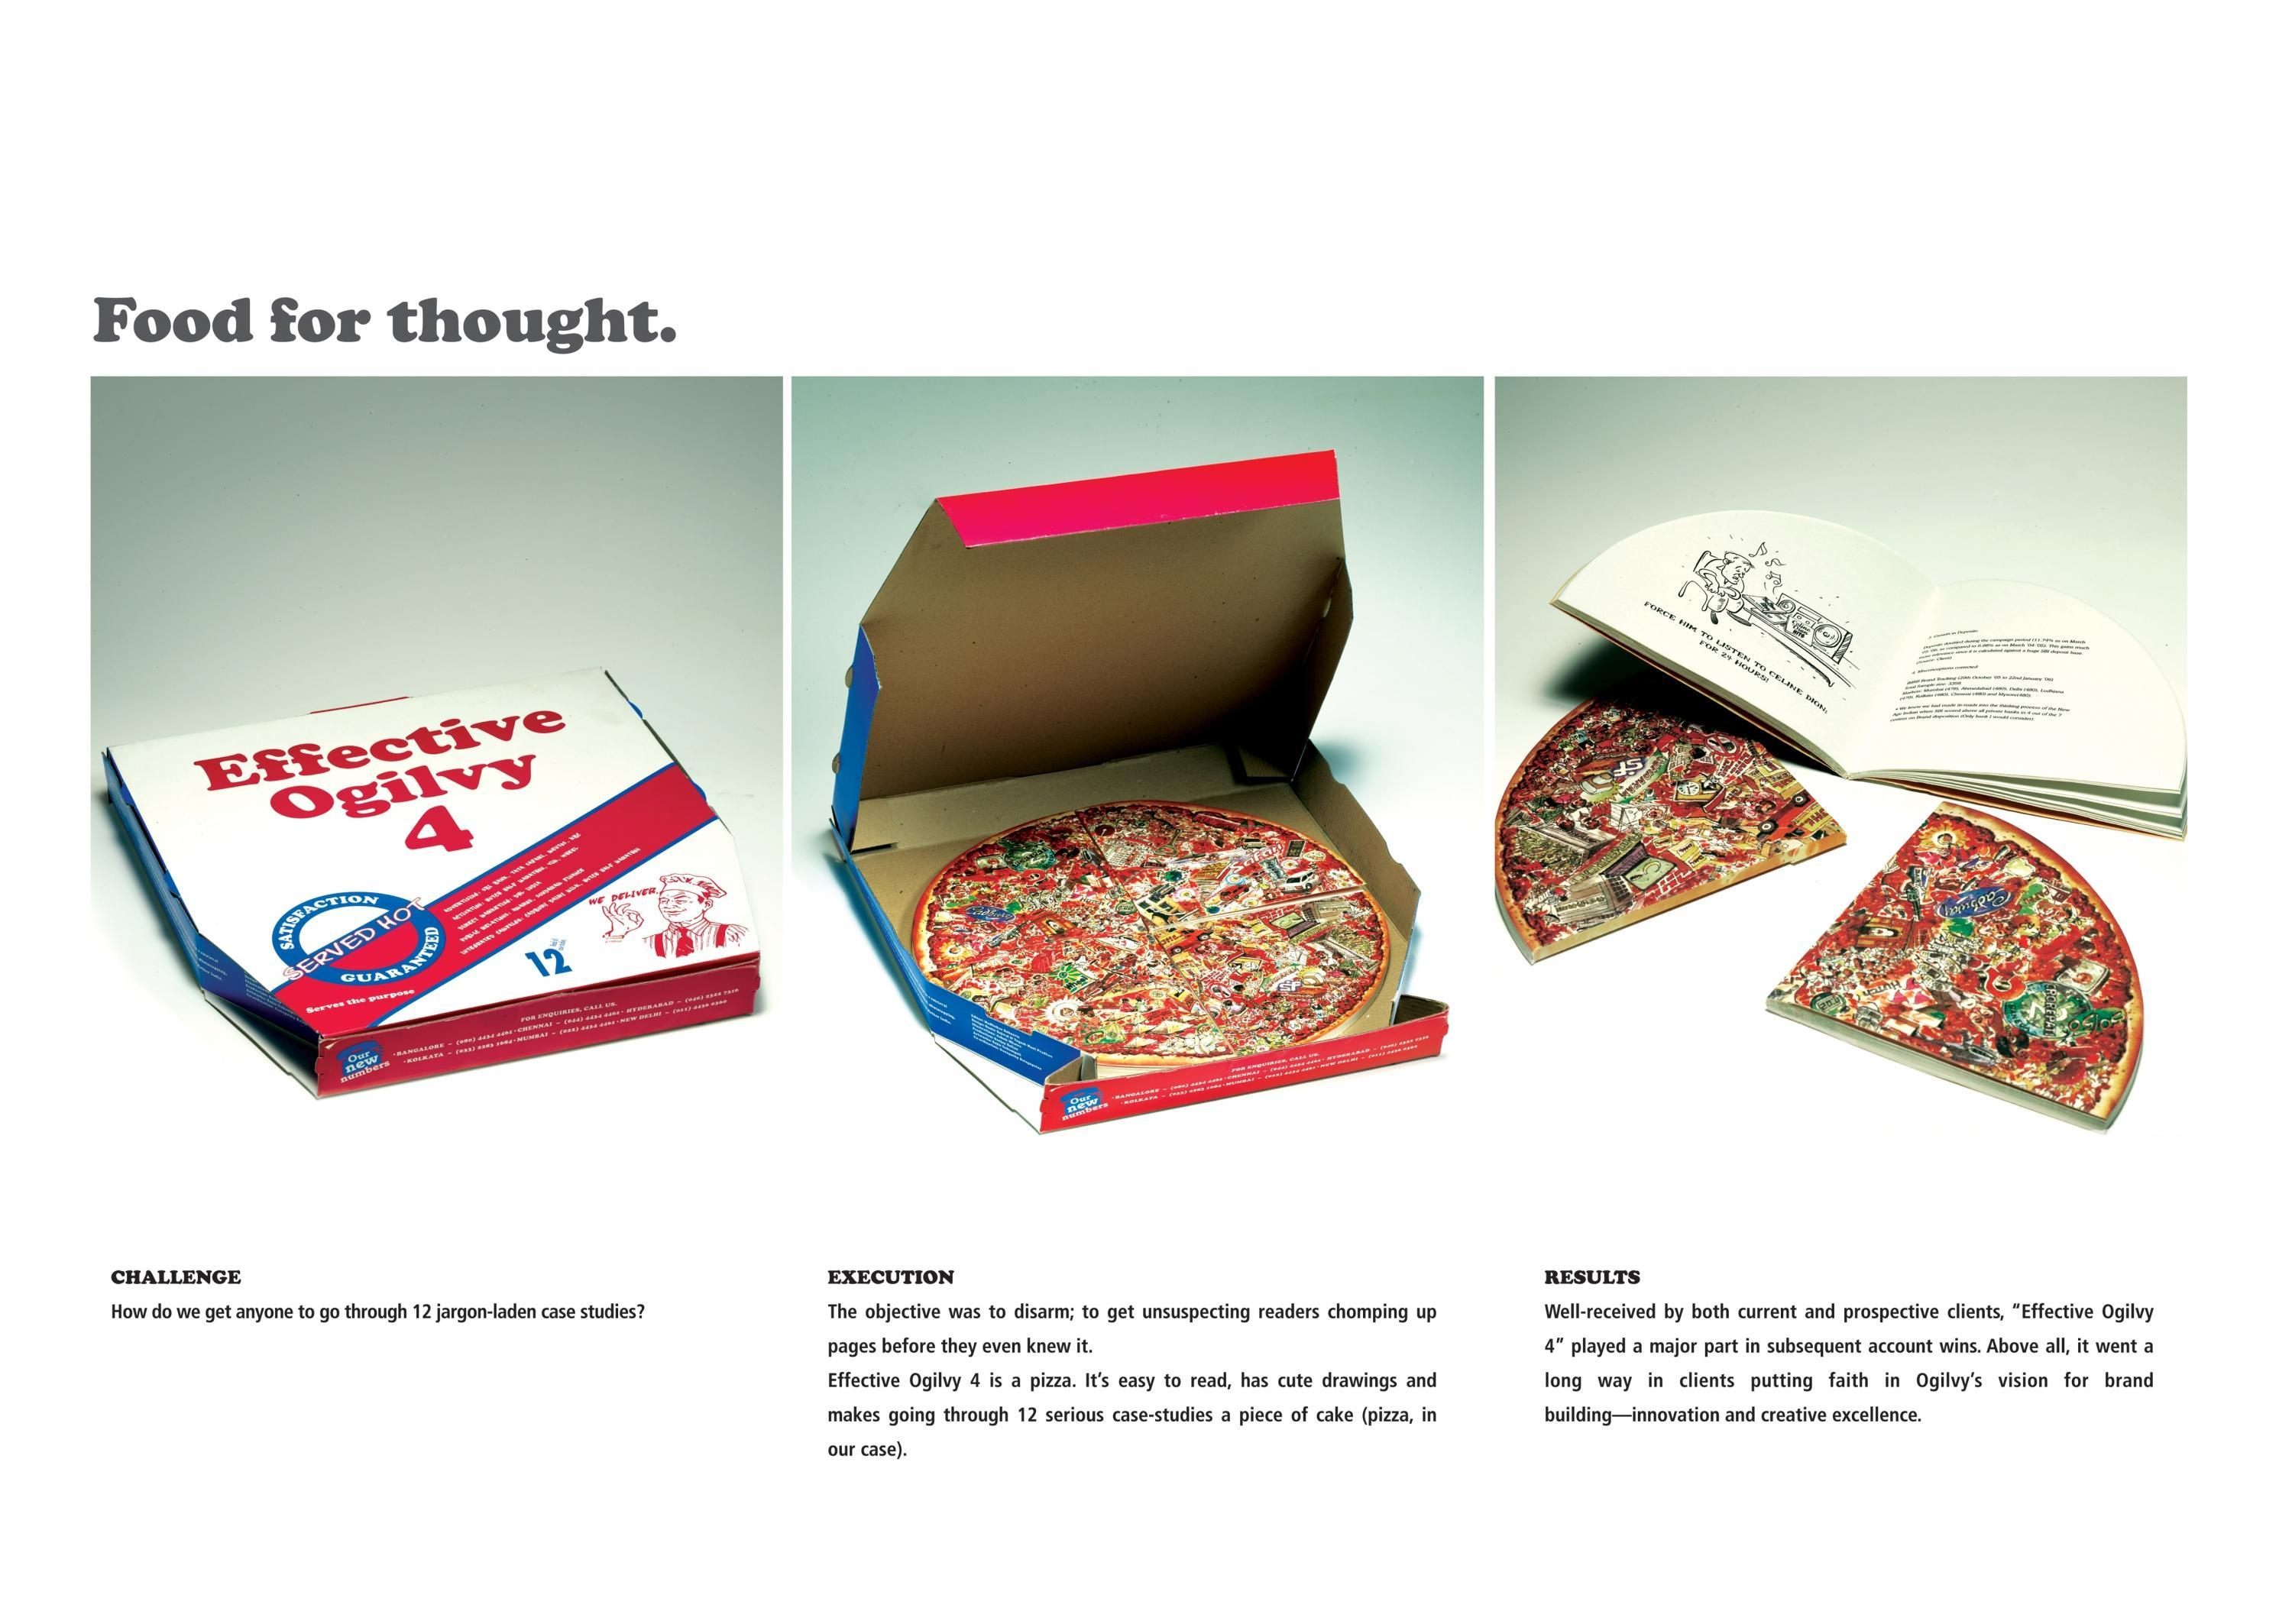 ogilvy mather india advertising agency effective ogilvy 4 - Ogilvy Mather Ad Agency